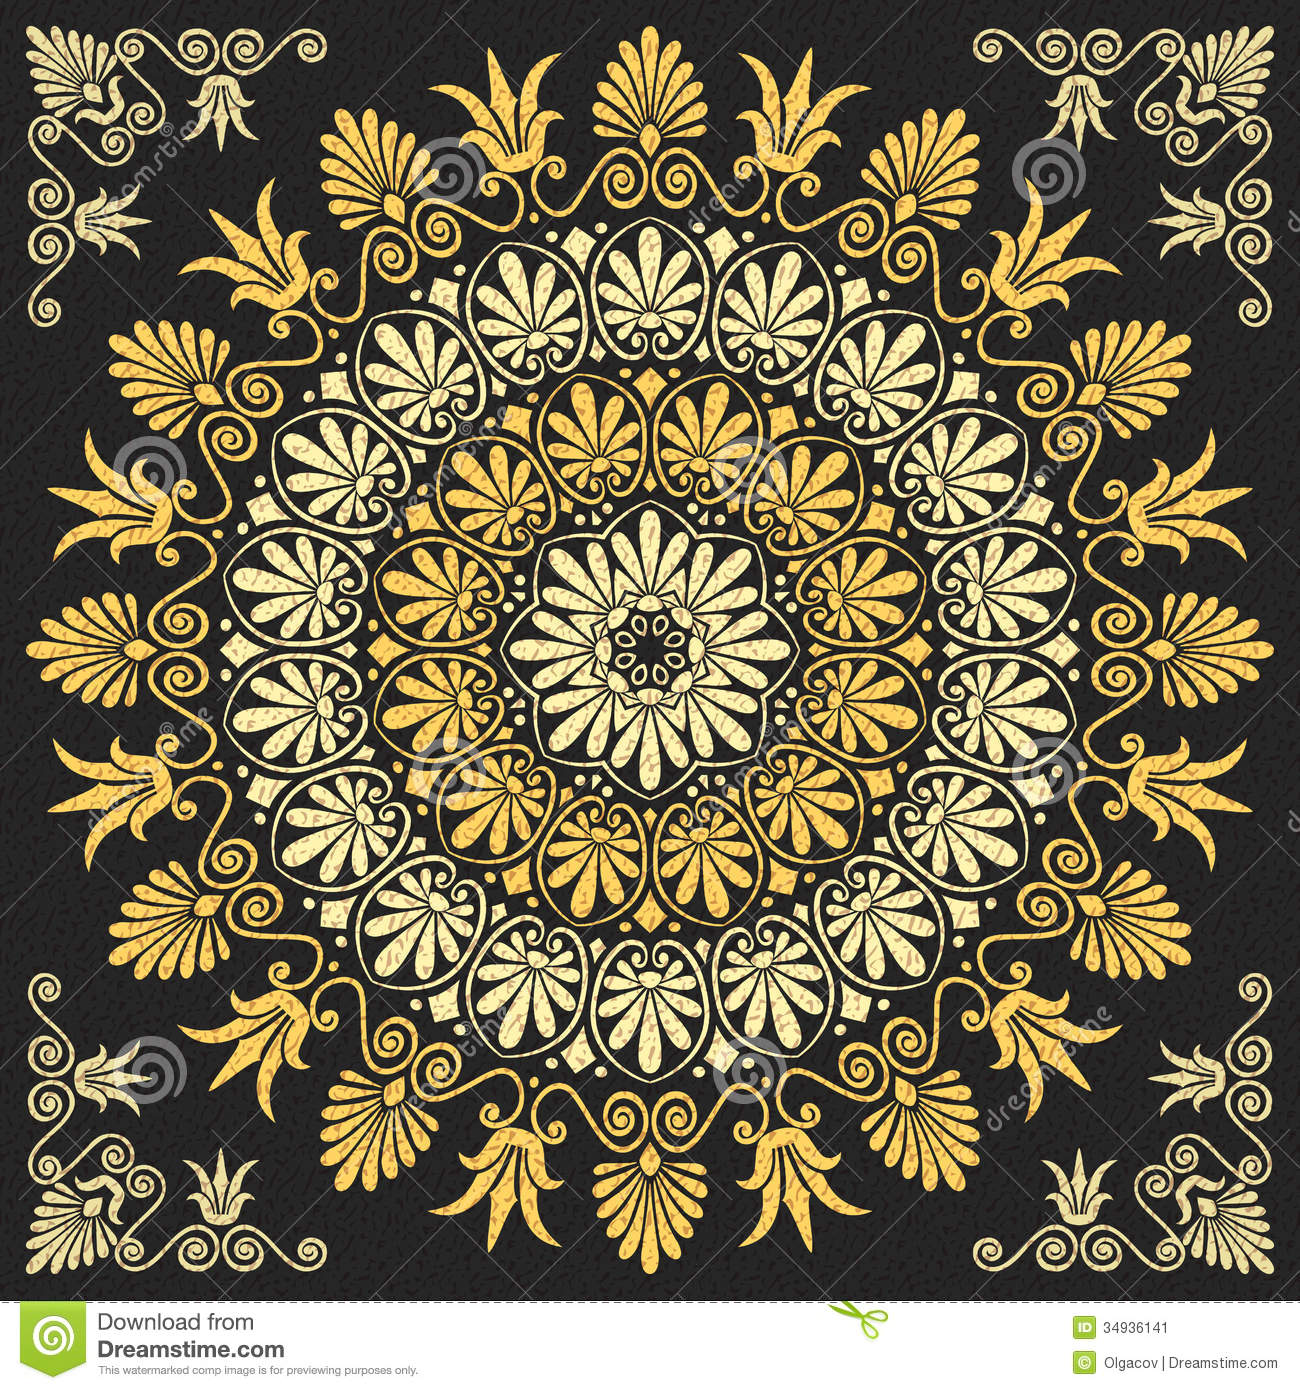 9 Gold Floral Ornament Vector Images